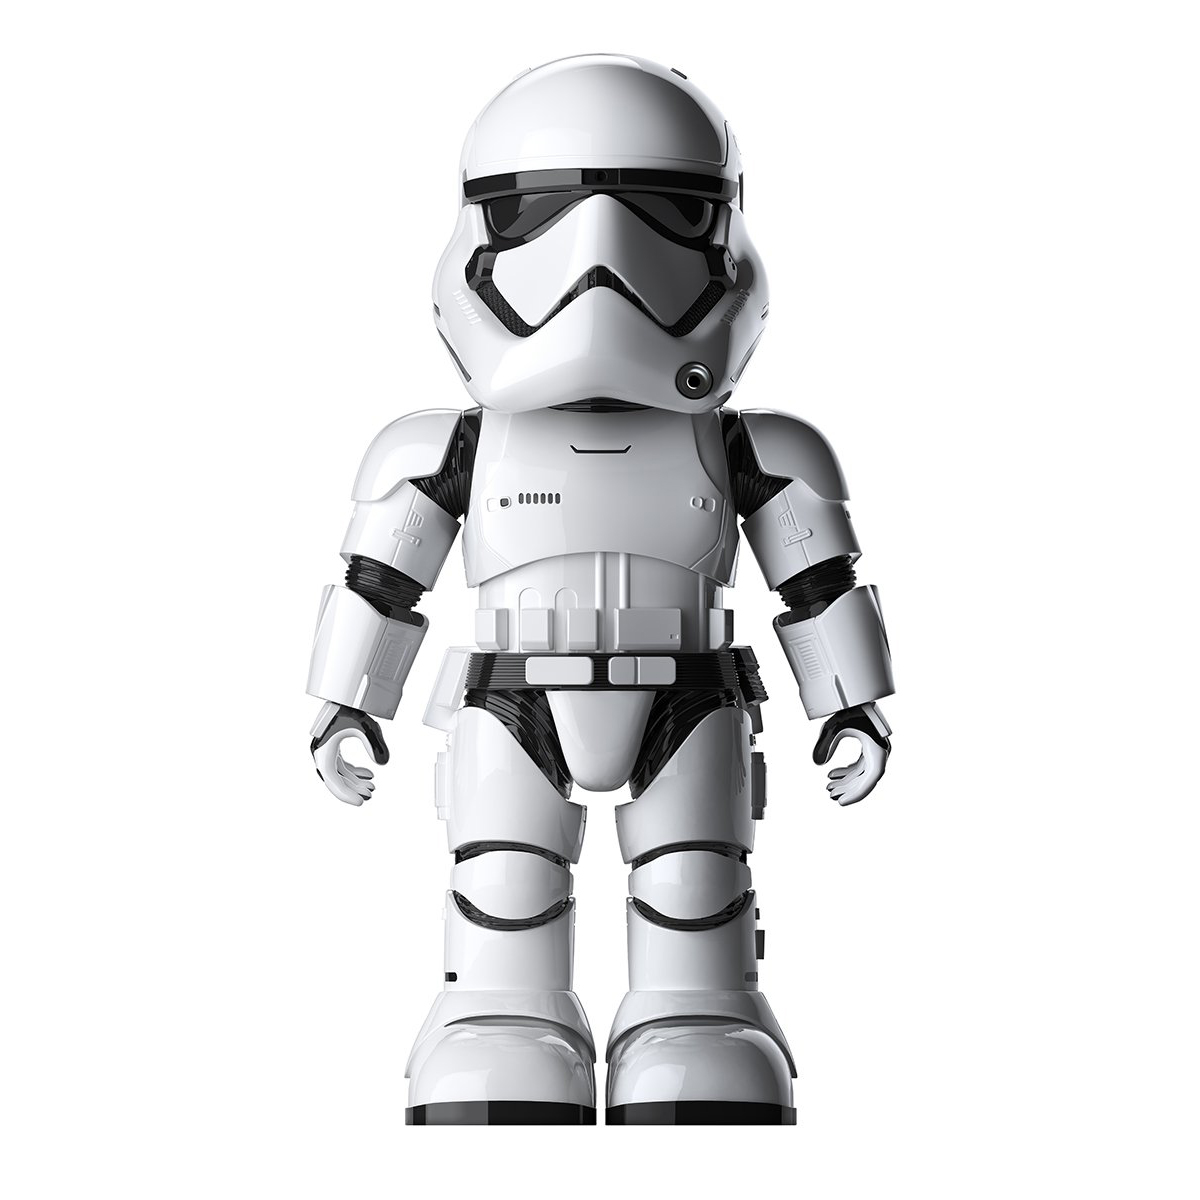 Mini Stormtrooper Robot